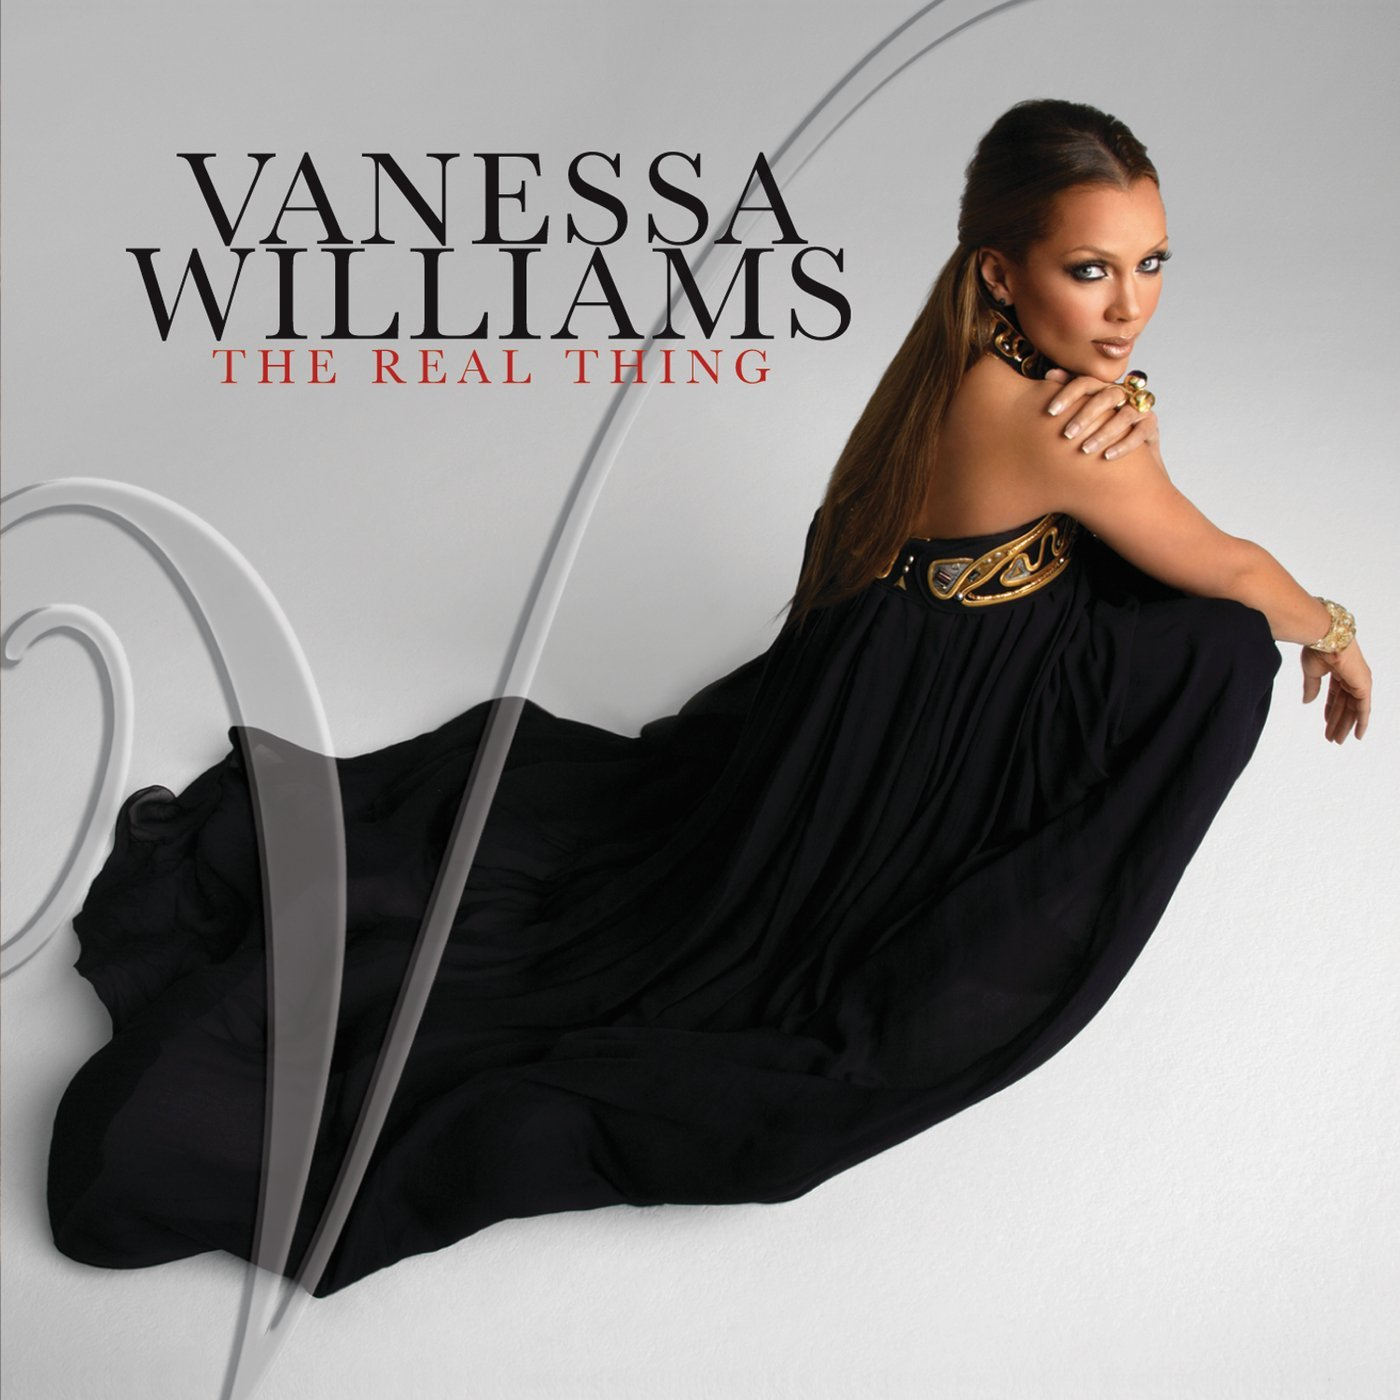 Vanessa Williams, The Real Thing